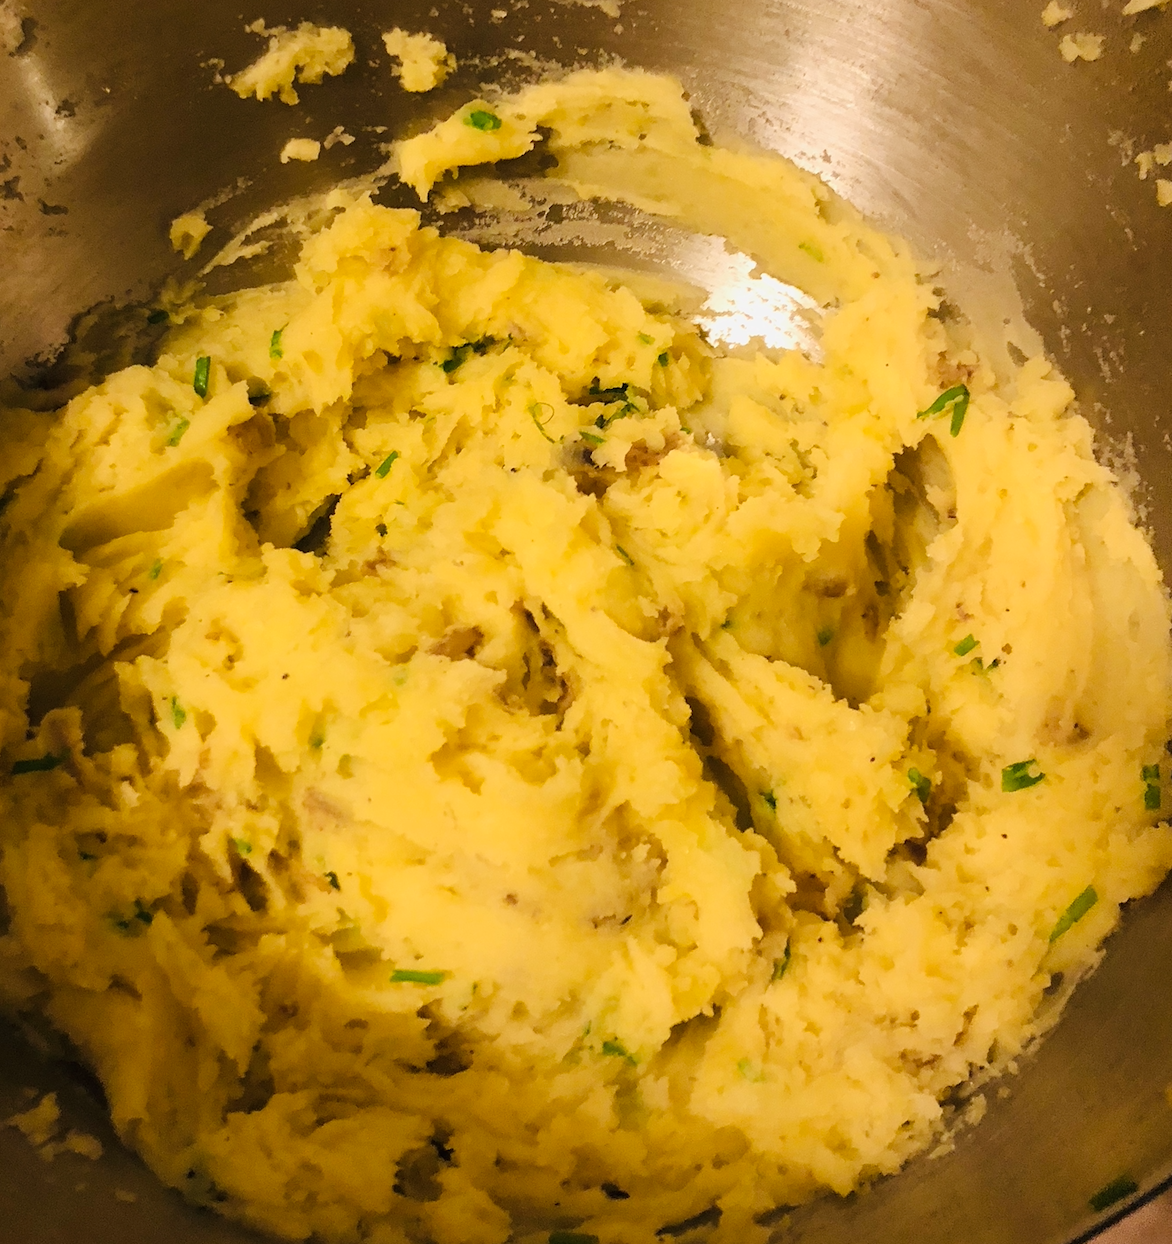 Vegan Mashed Potatoes